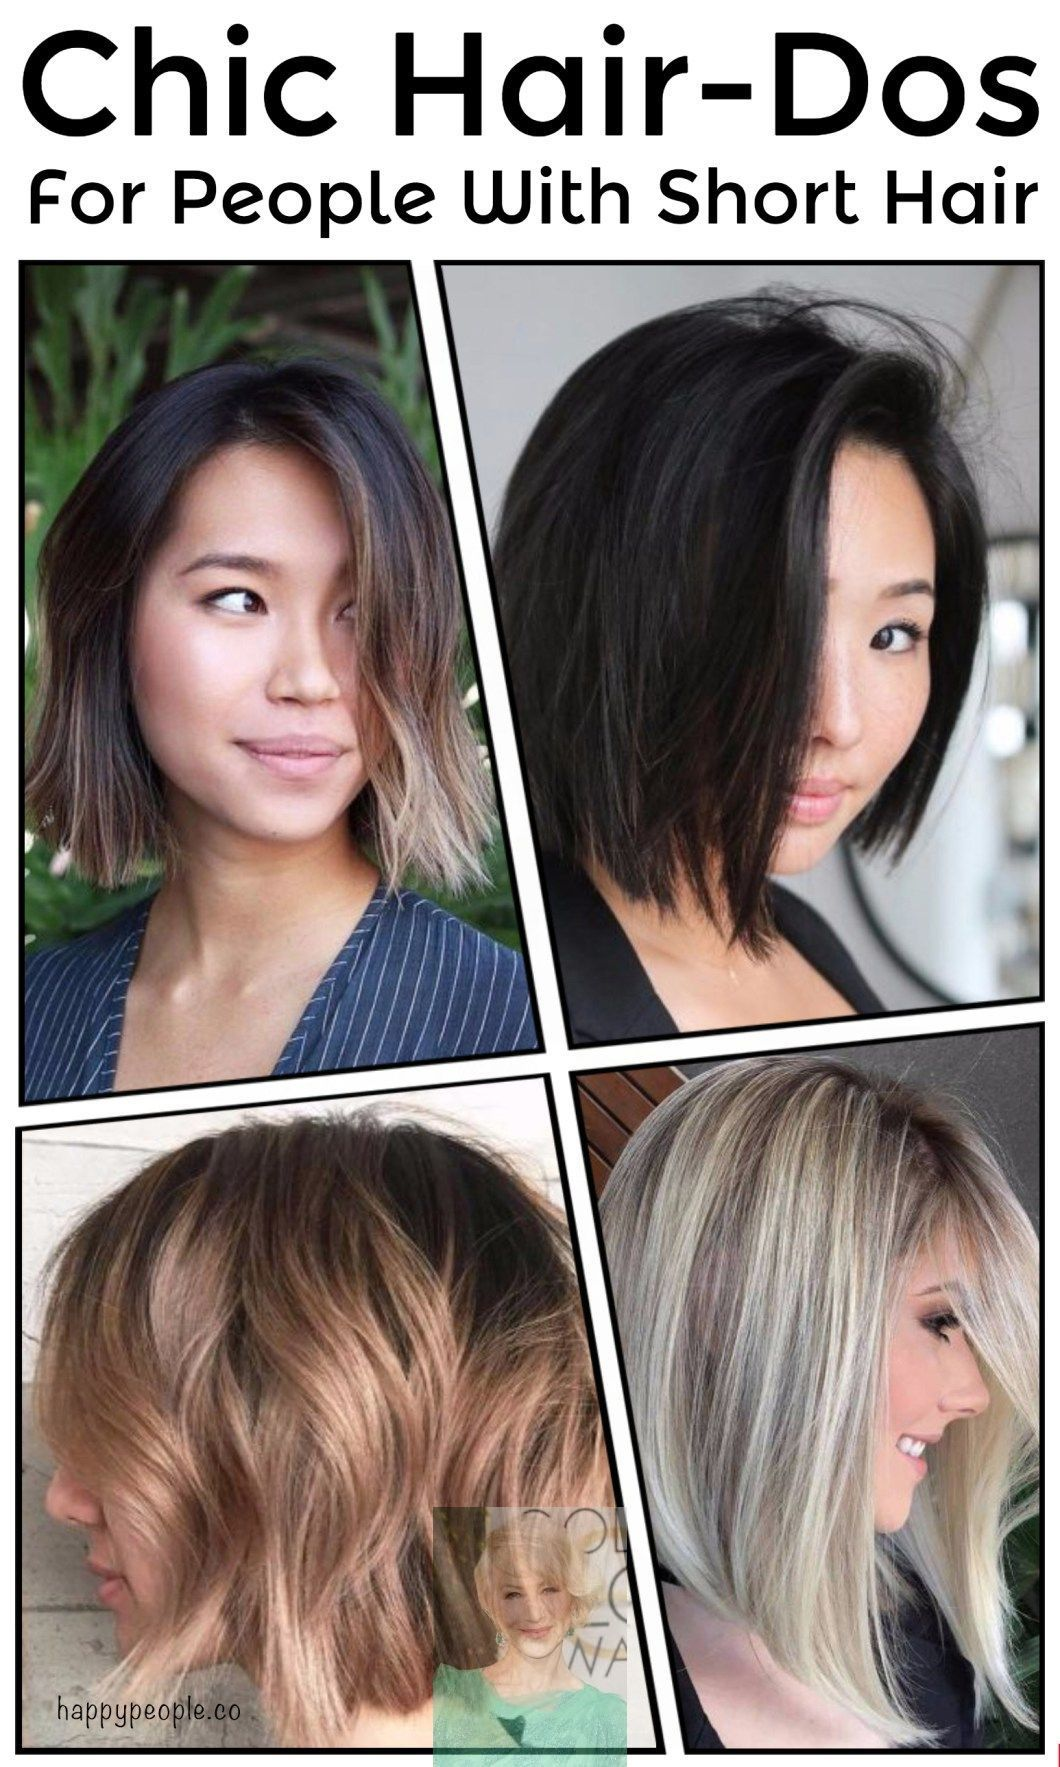 Discussion on this topic: 20 Jaw-Dropping Long Hairstyles for Round Faces, 20-jaw-dropping-long-hairstyles-for-round-faces/